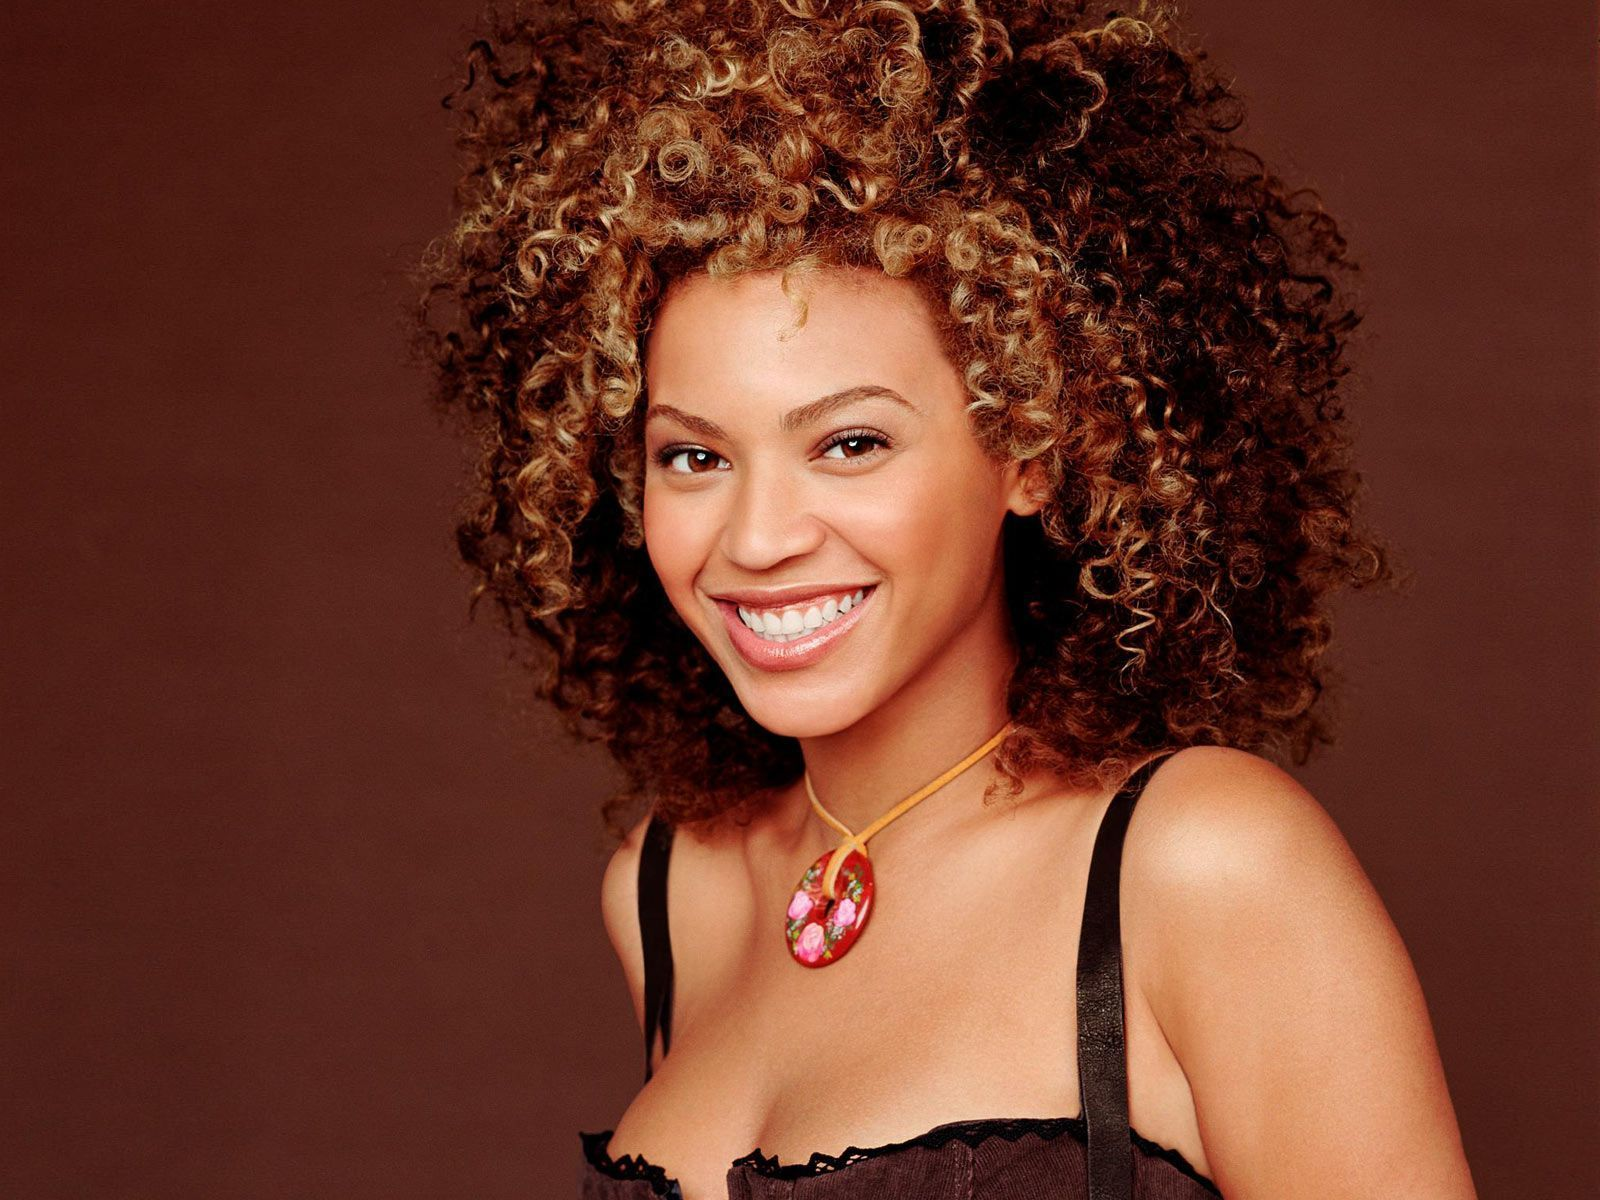 shahd beyonce wallpapers beyonce wallpaper 2622595